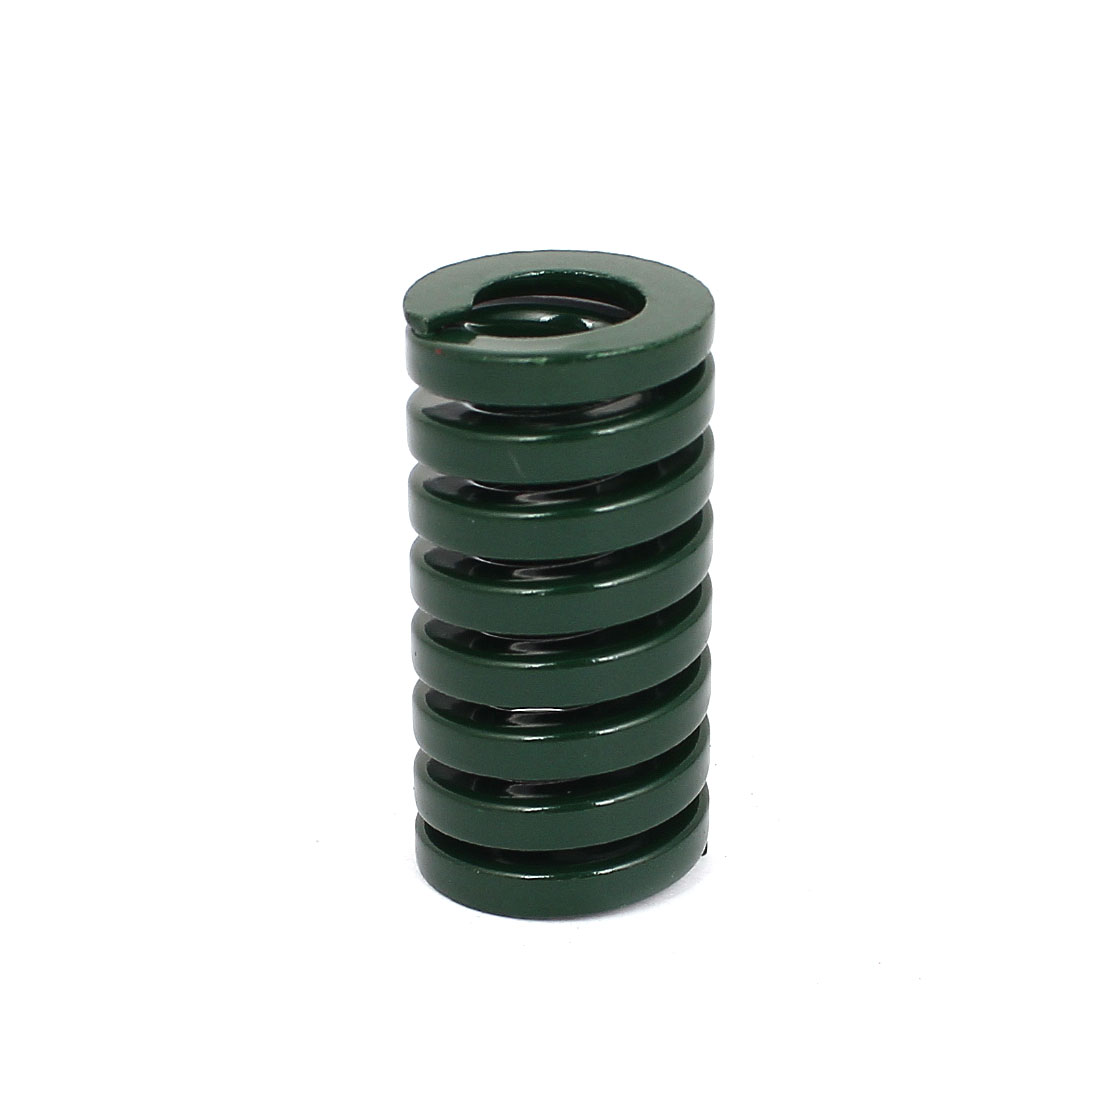 20mm OD 40mm Long Heavy Load Coil Stamping Compression Mold Die Spring Green